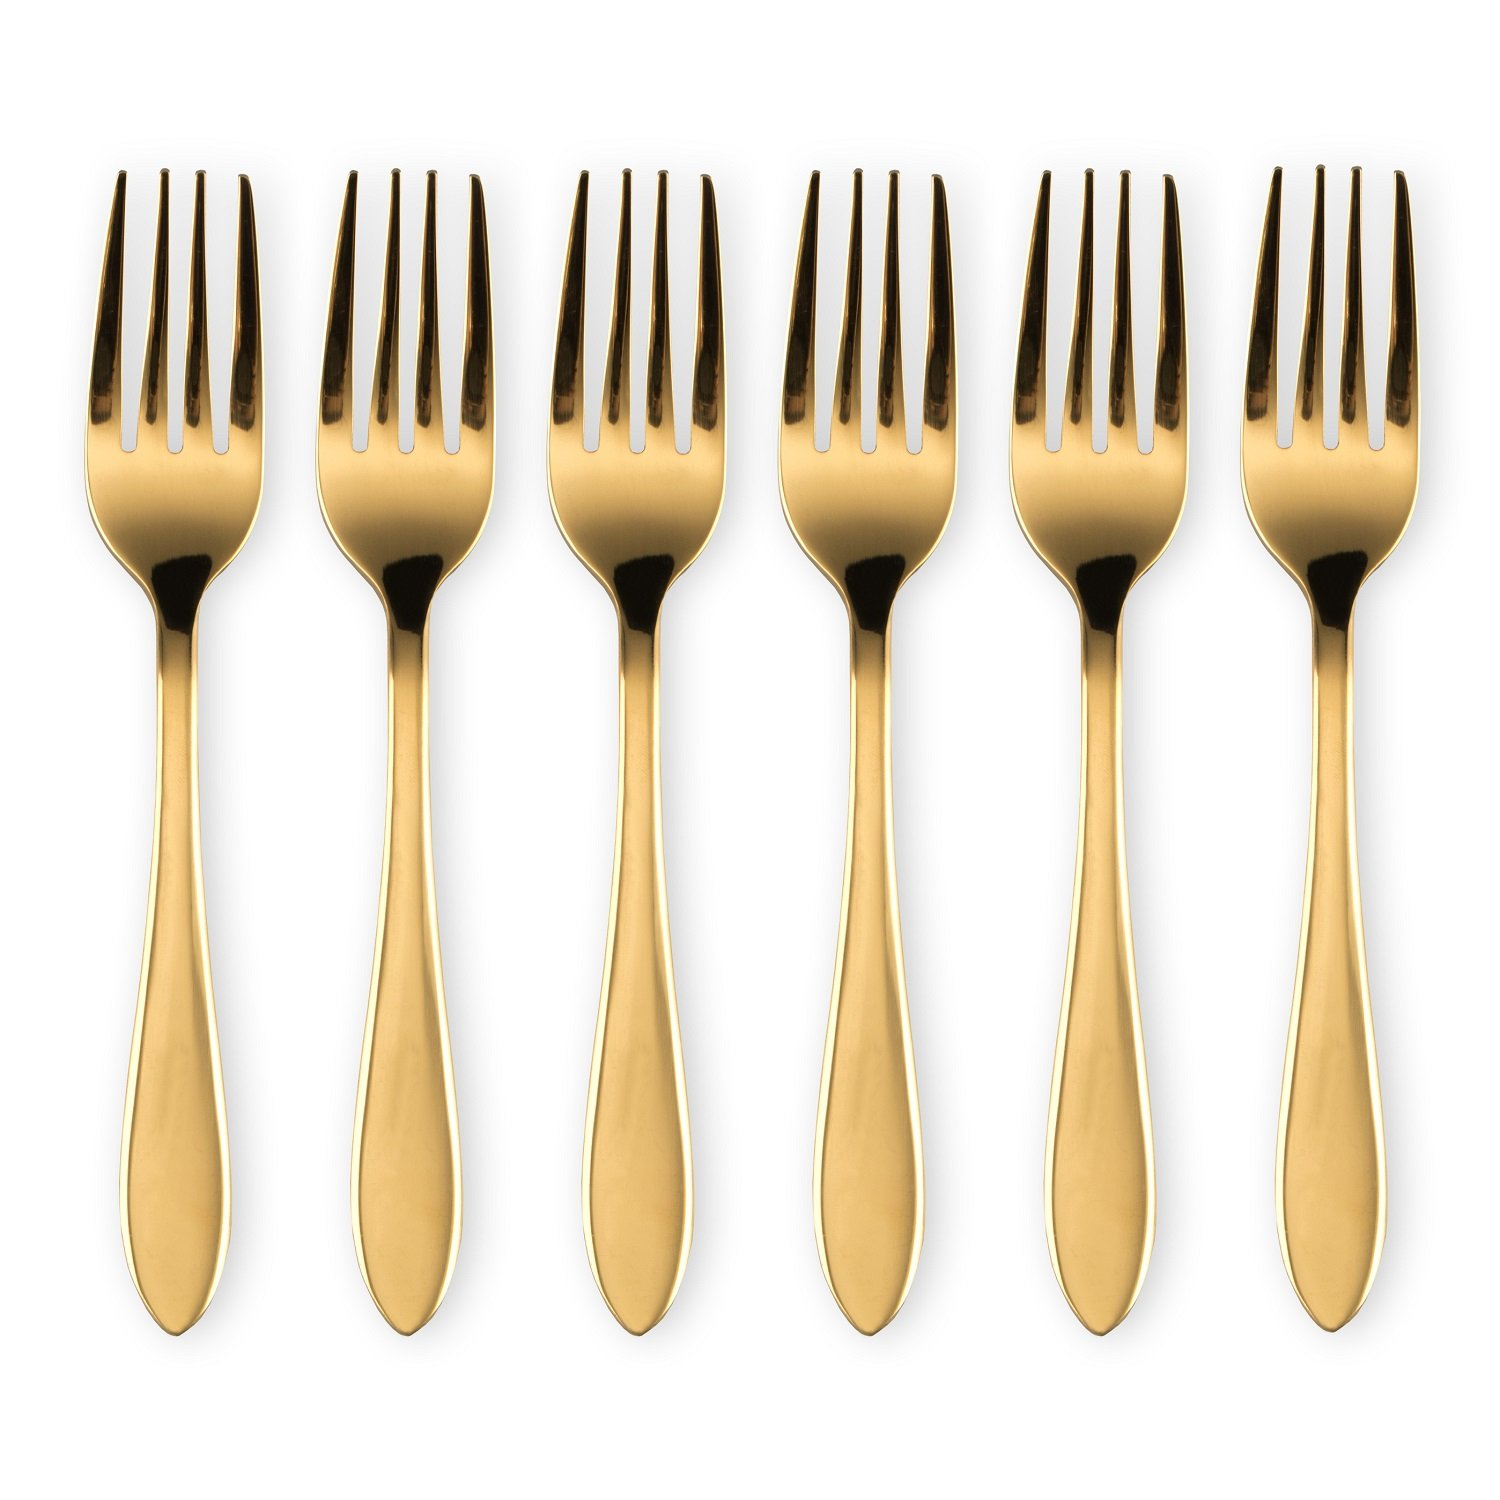 HOMQUEN Gold Fruit Forks, 6-Pieces Stainless Steel Three Prong Forks Bistro Cocktail Forks Tasting Appetizer Forks Set Mini Cake Forks (5.58 inch) BERGLAND T108WSG-TF-6P